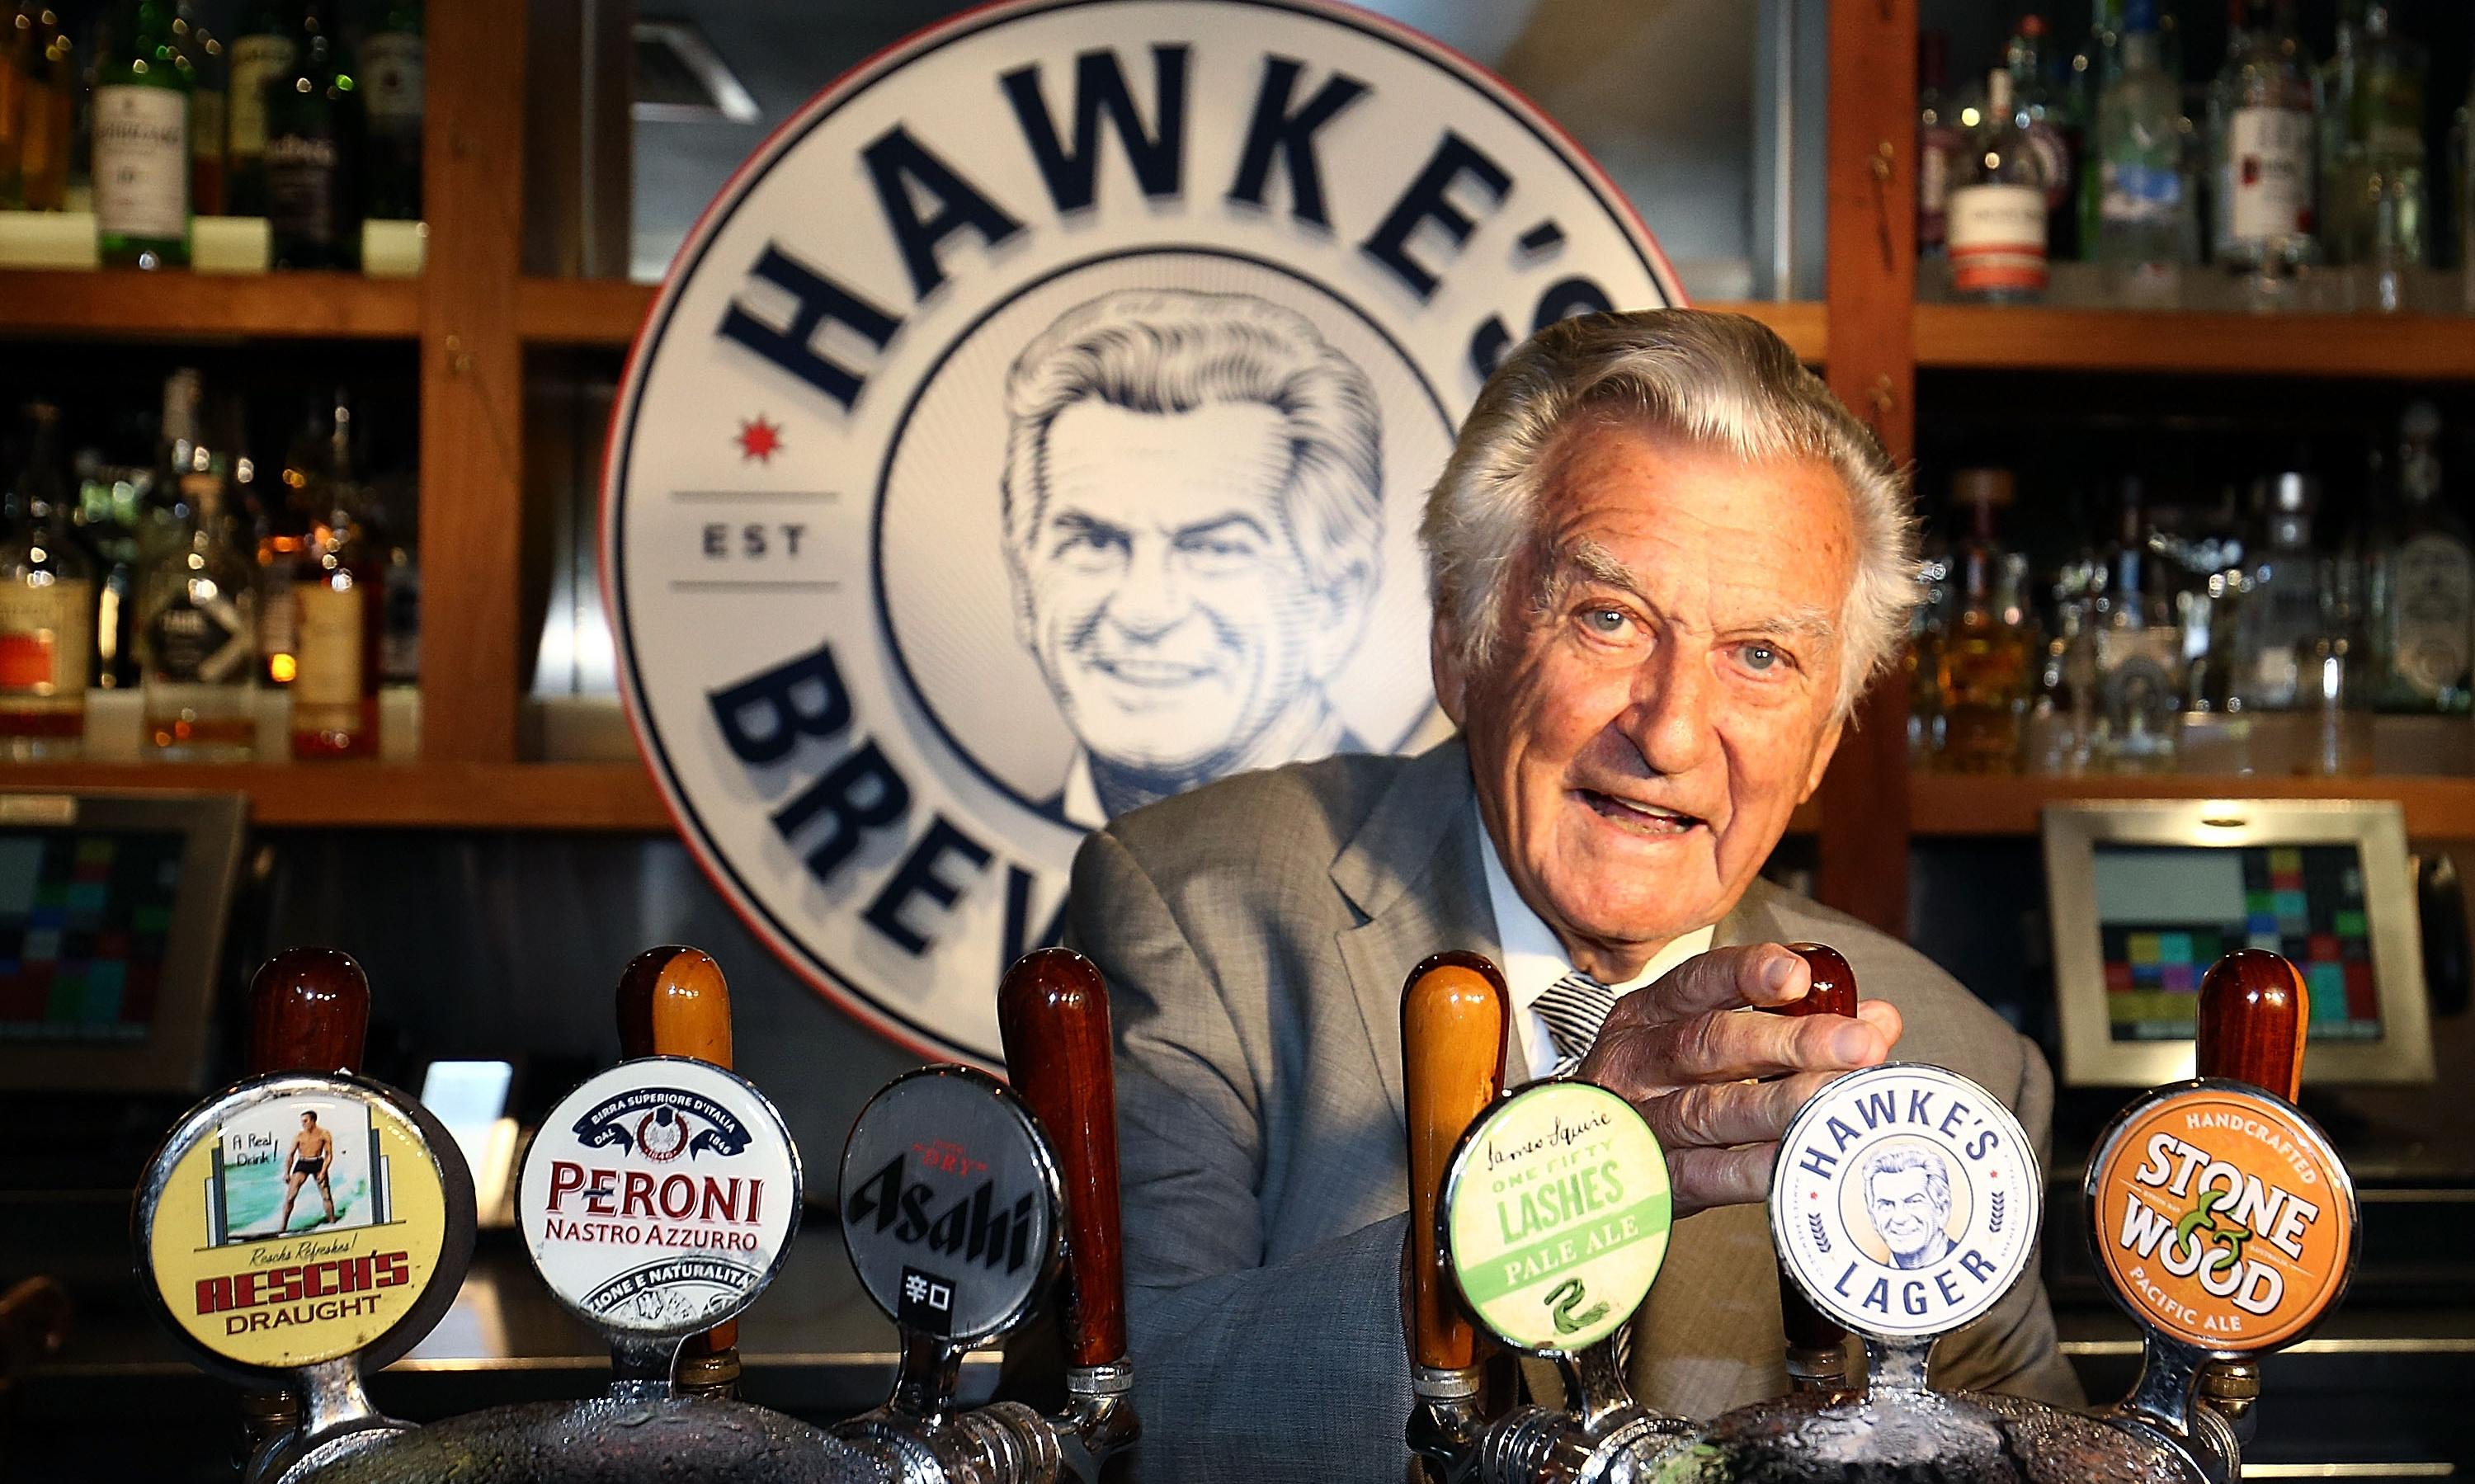 Bob Hawke's beer-drinking record may be marked by Oxford blue plaque